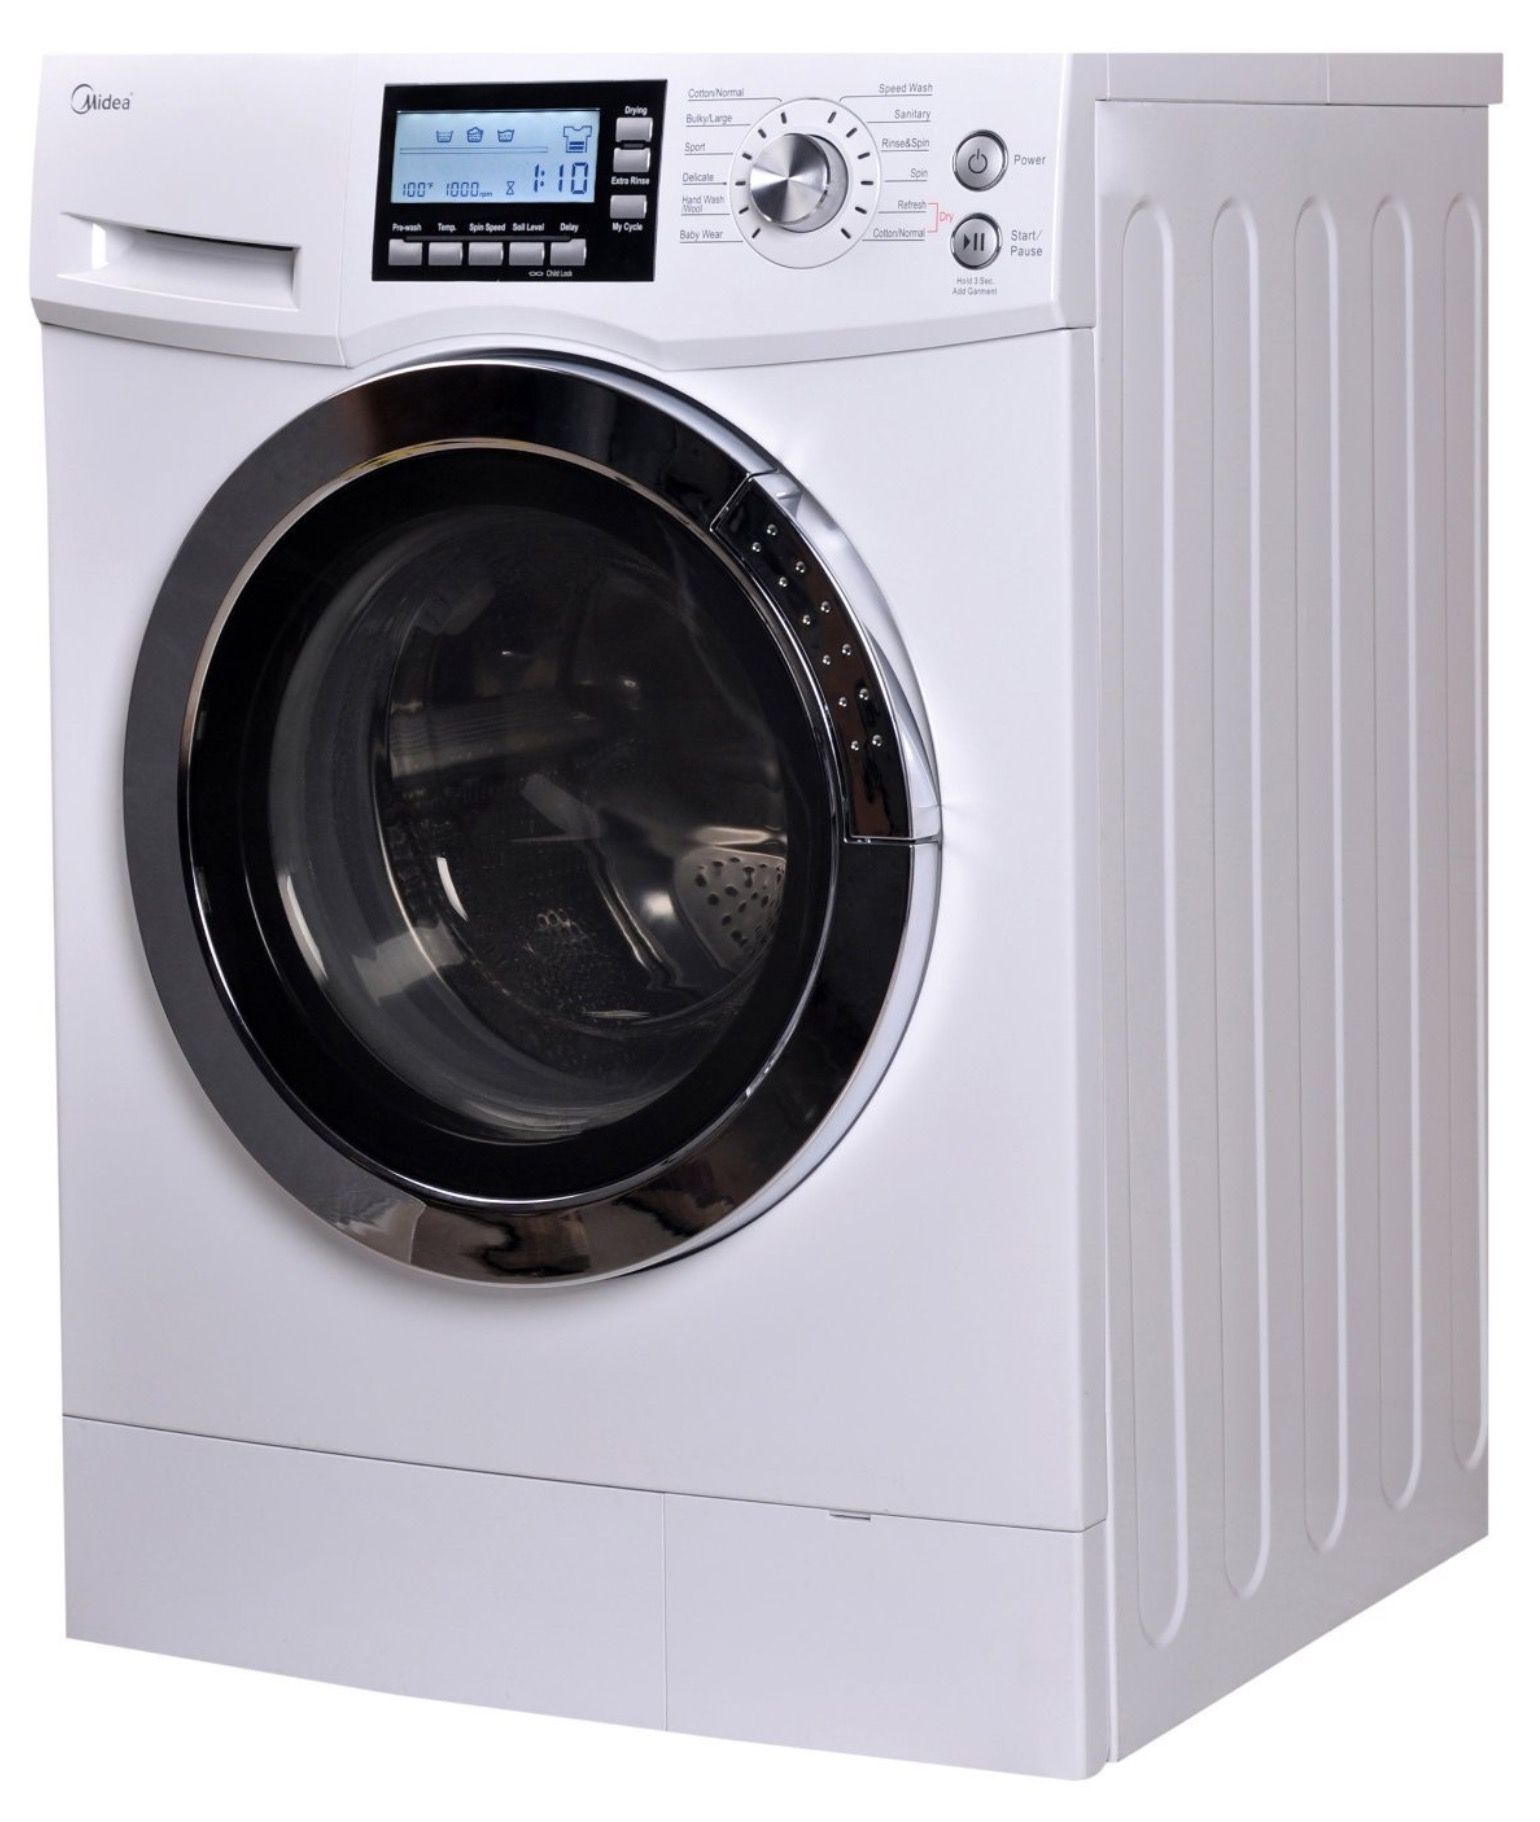 Top Washer Dryers Combos For Tiny Homes Bestappliance 2 Cu Ft Ventless Washer Dryer Combo Combination Washer Dryer Compact Washer And Dryer